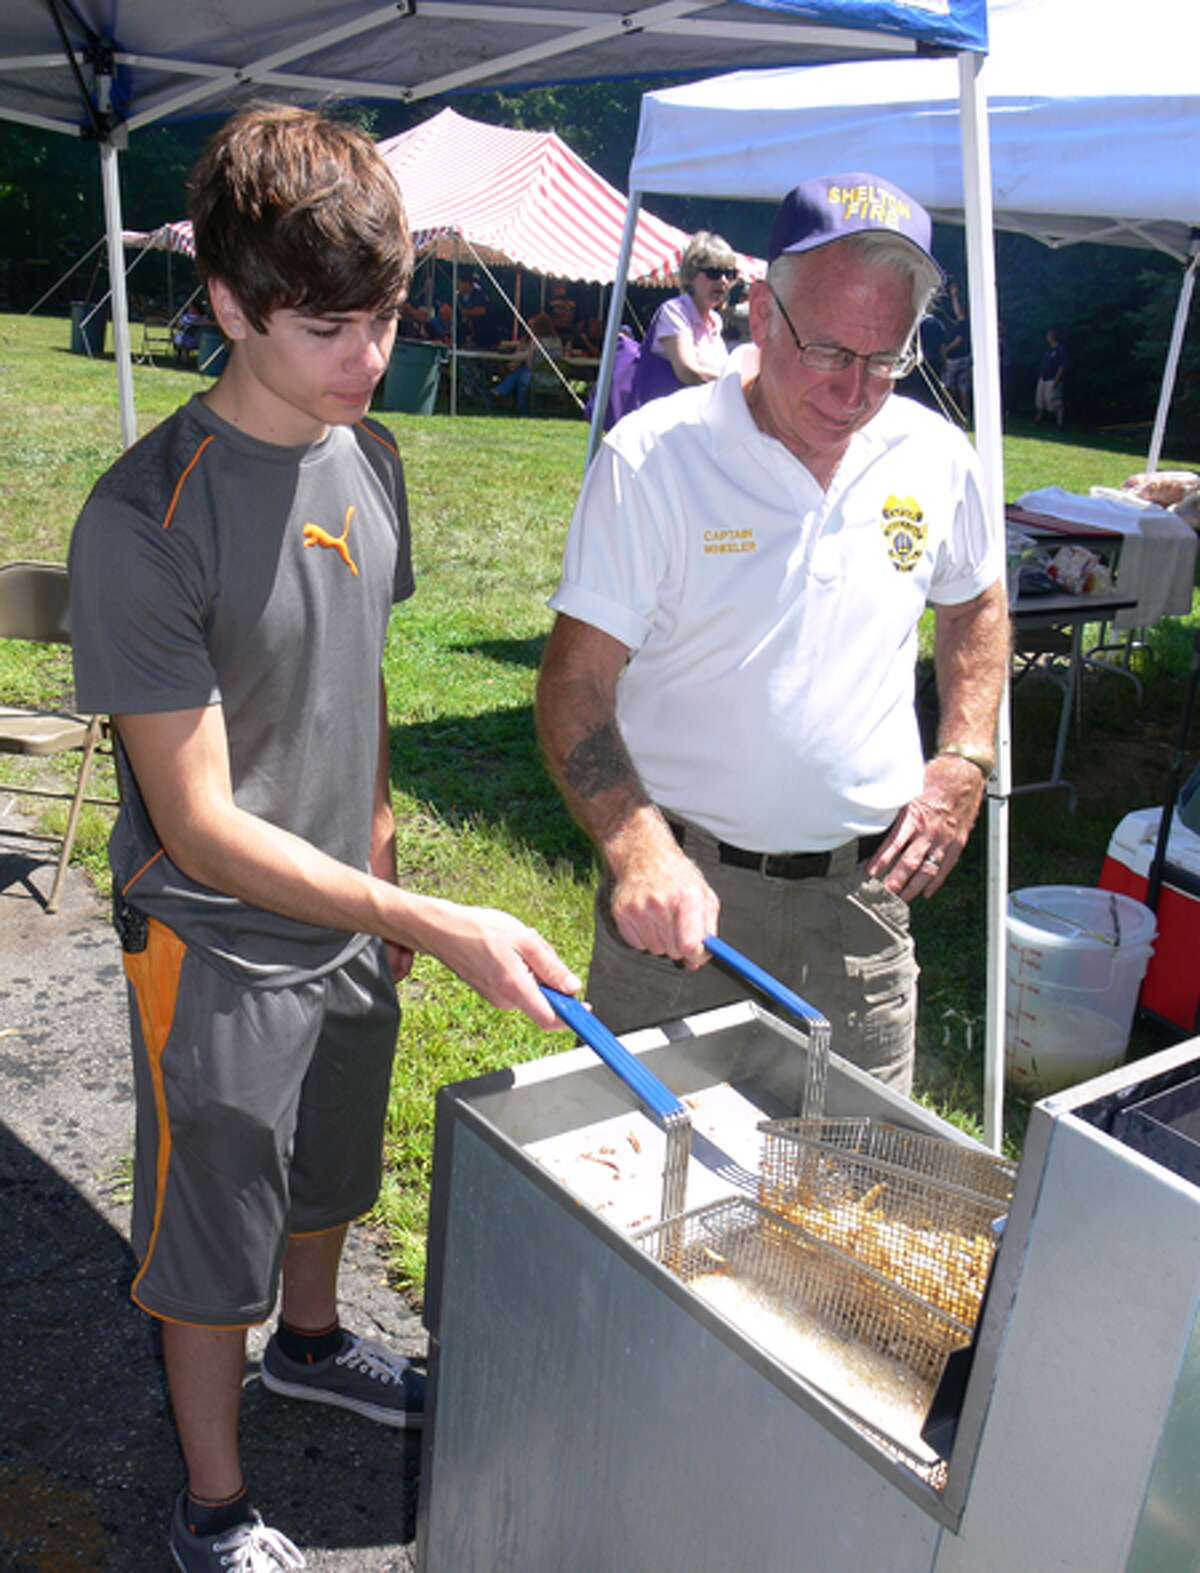 Making French fries during the event are White Hills Fire company members, from left, Andrew Kopac, 20, and Capt. Fran Wheeler.